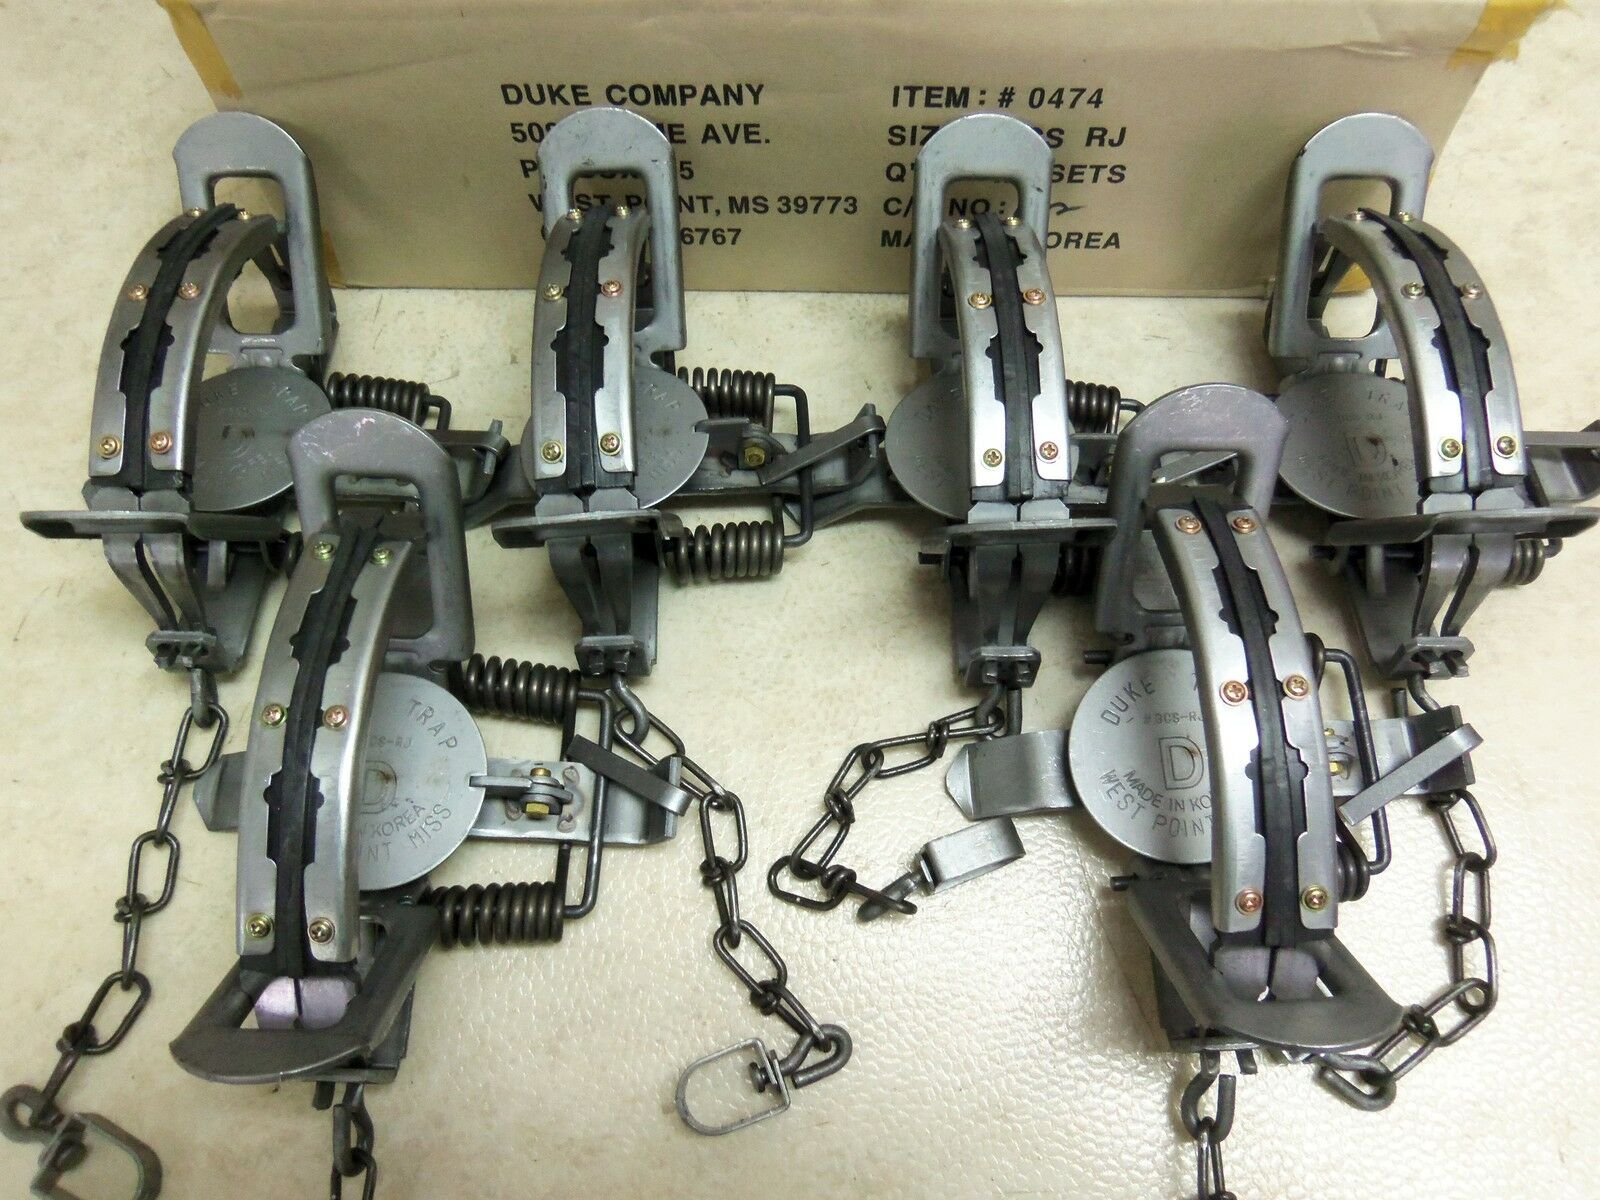 6 New 3 Duke   3 New RUBBER JAW Coil Spring Traps Fox Bobcat Coyote  Trapping 0474 80a52b